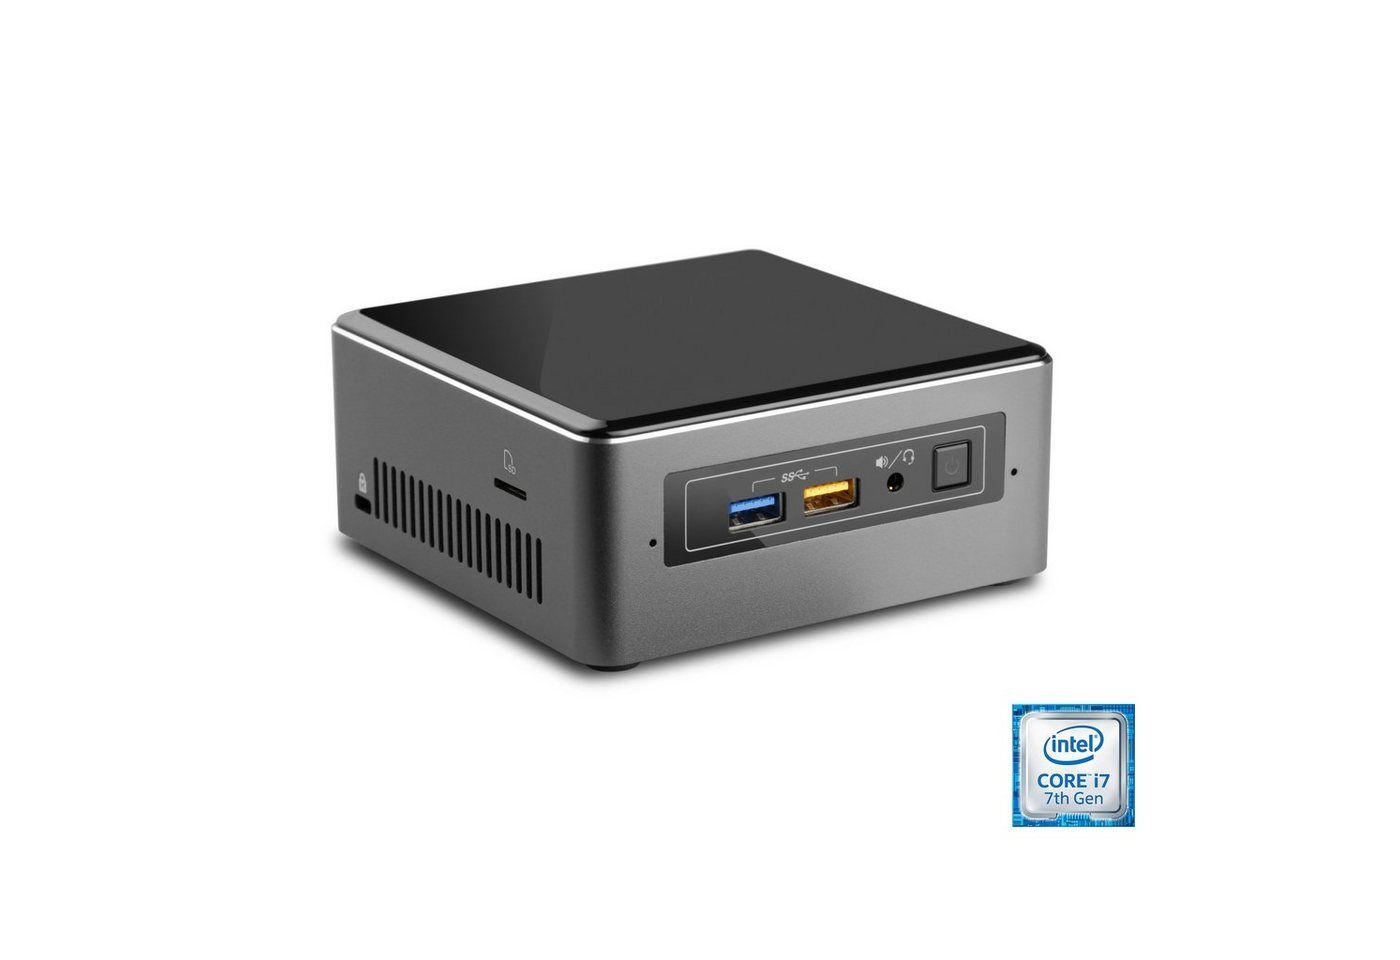 csl-mini-pc-core-i7-7567u-intel-hd-650-16gb-ddr4-250gb-ssd-intel-nuc